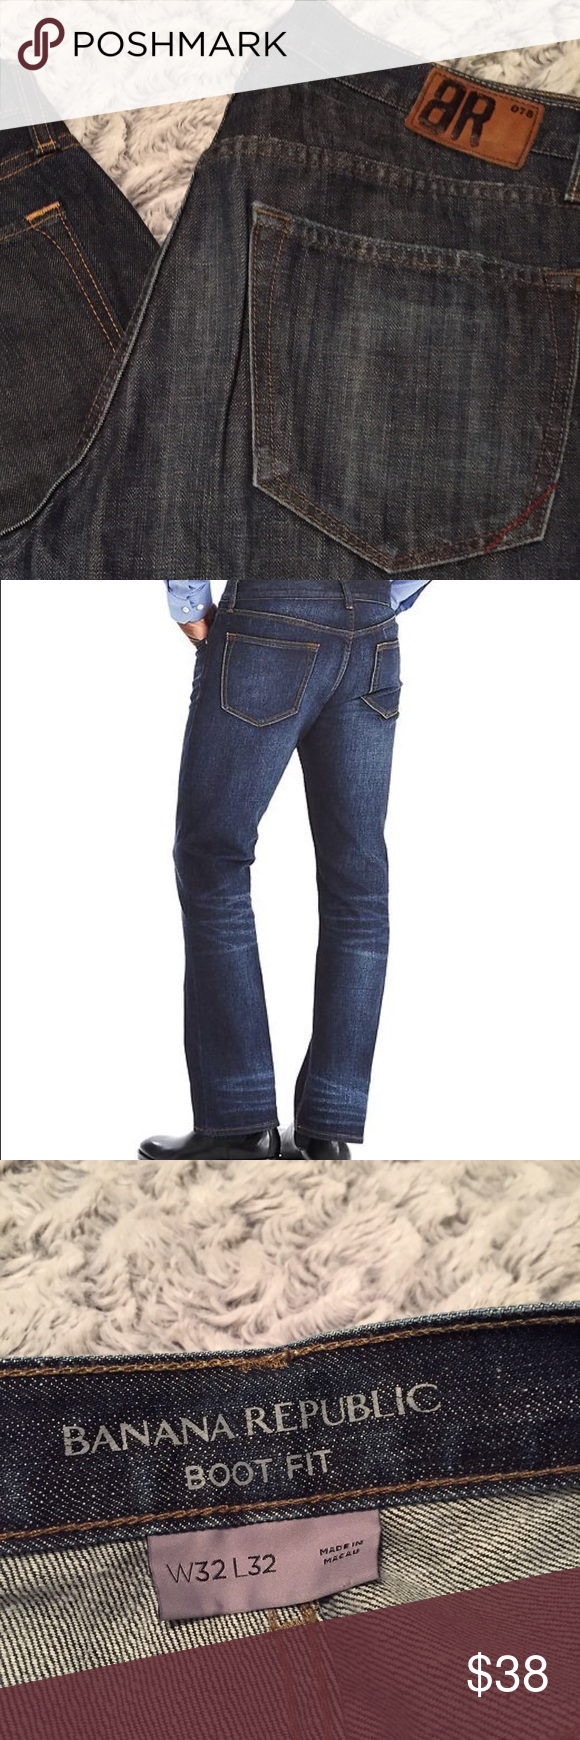 BR Bootfit 32x32 Banana Republic BR Denim Bootfit Jeans Size 32x32 He may have worn these. I don't believe he did. Like New condition. Banana Republic Jeans Bootcut